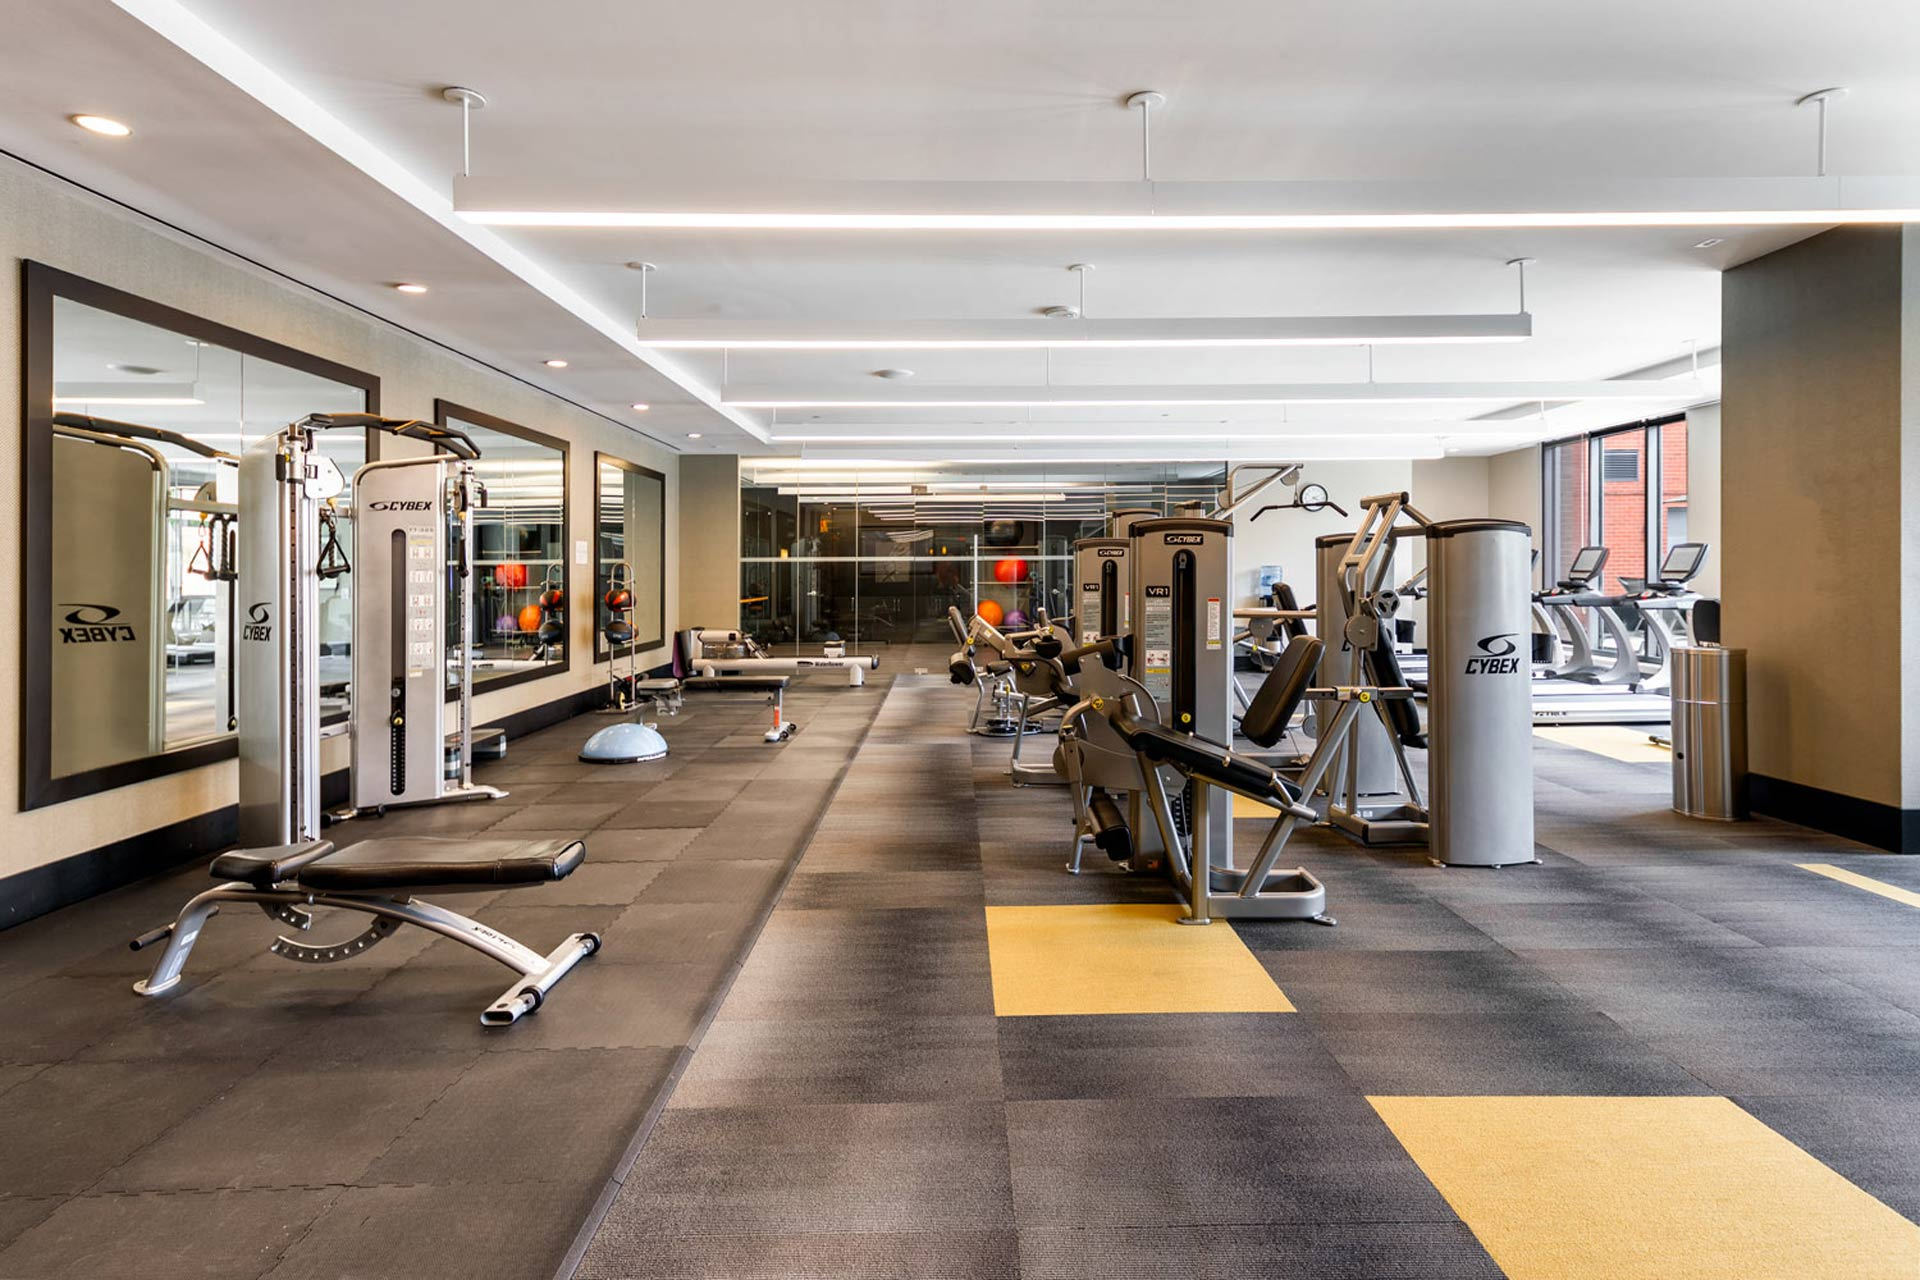 Large, bright fitness center with cardio and strength equipment